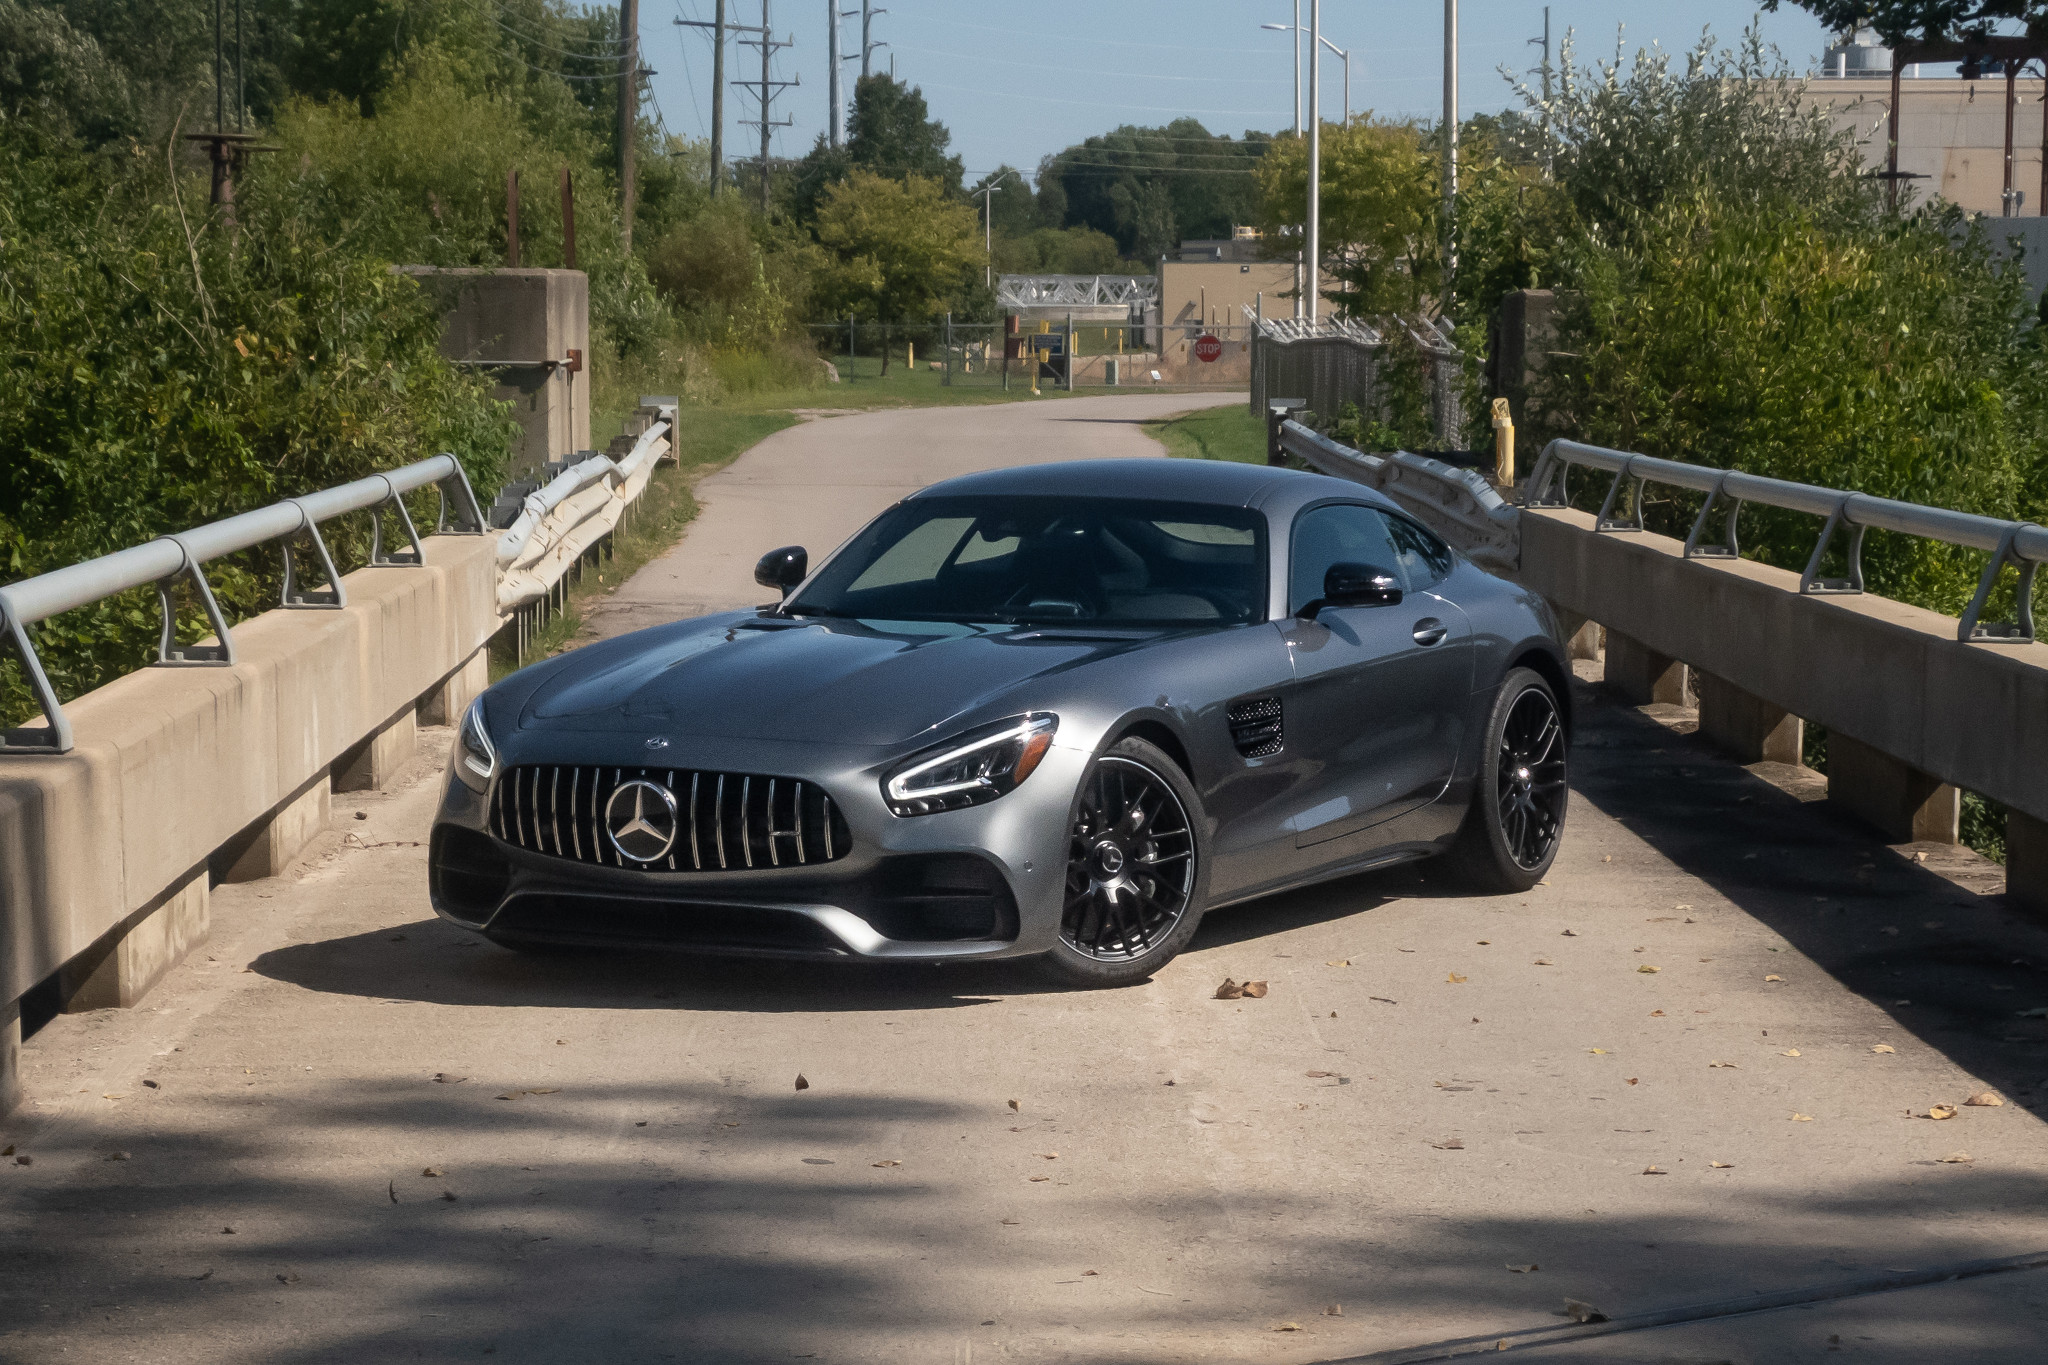 2020 Mercedes-AMG GT Coupe: 5 Standout Features in This Standout Car